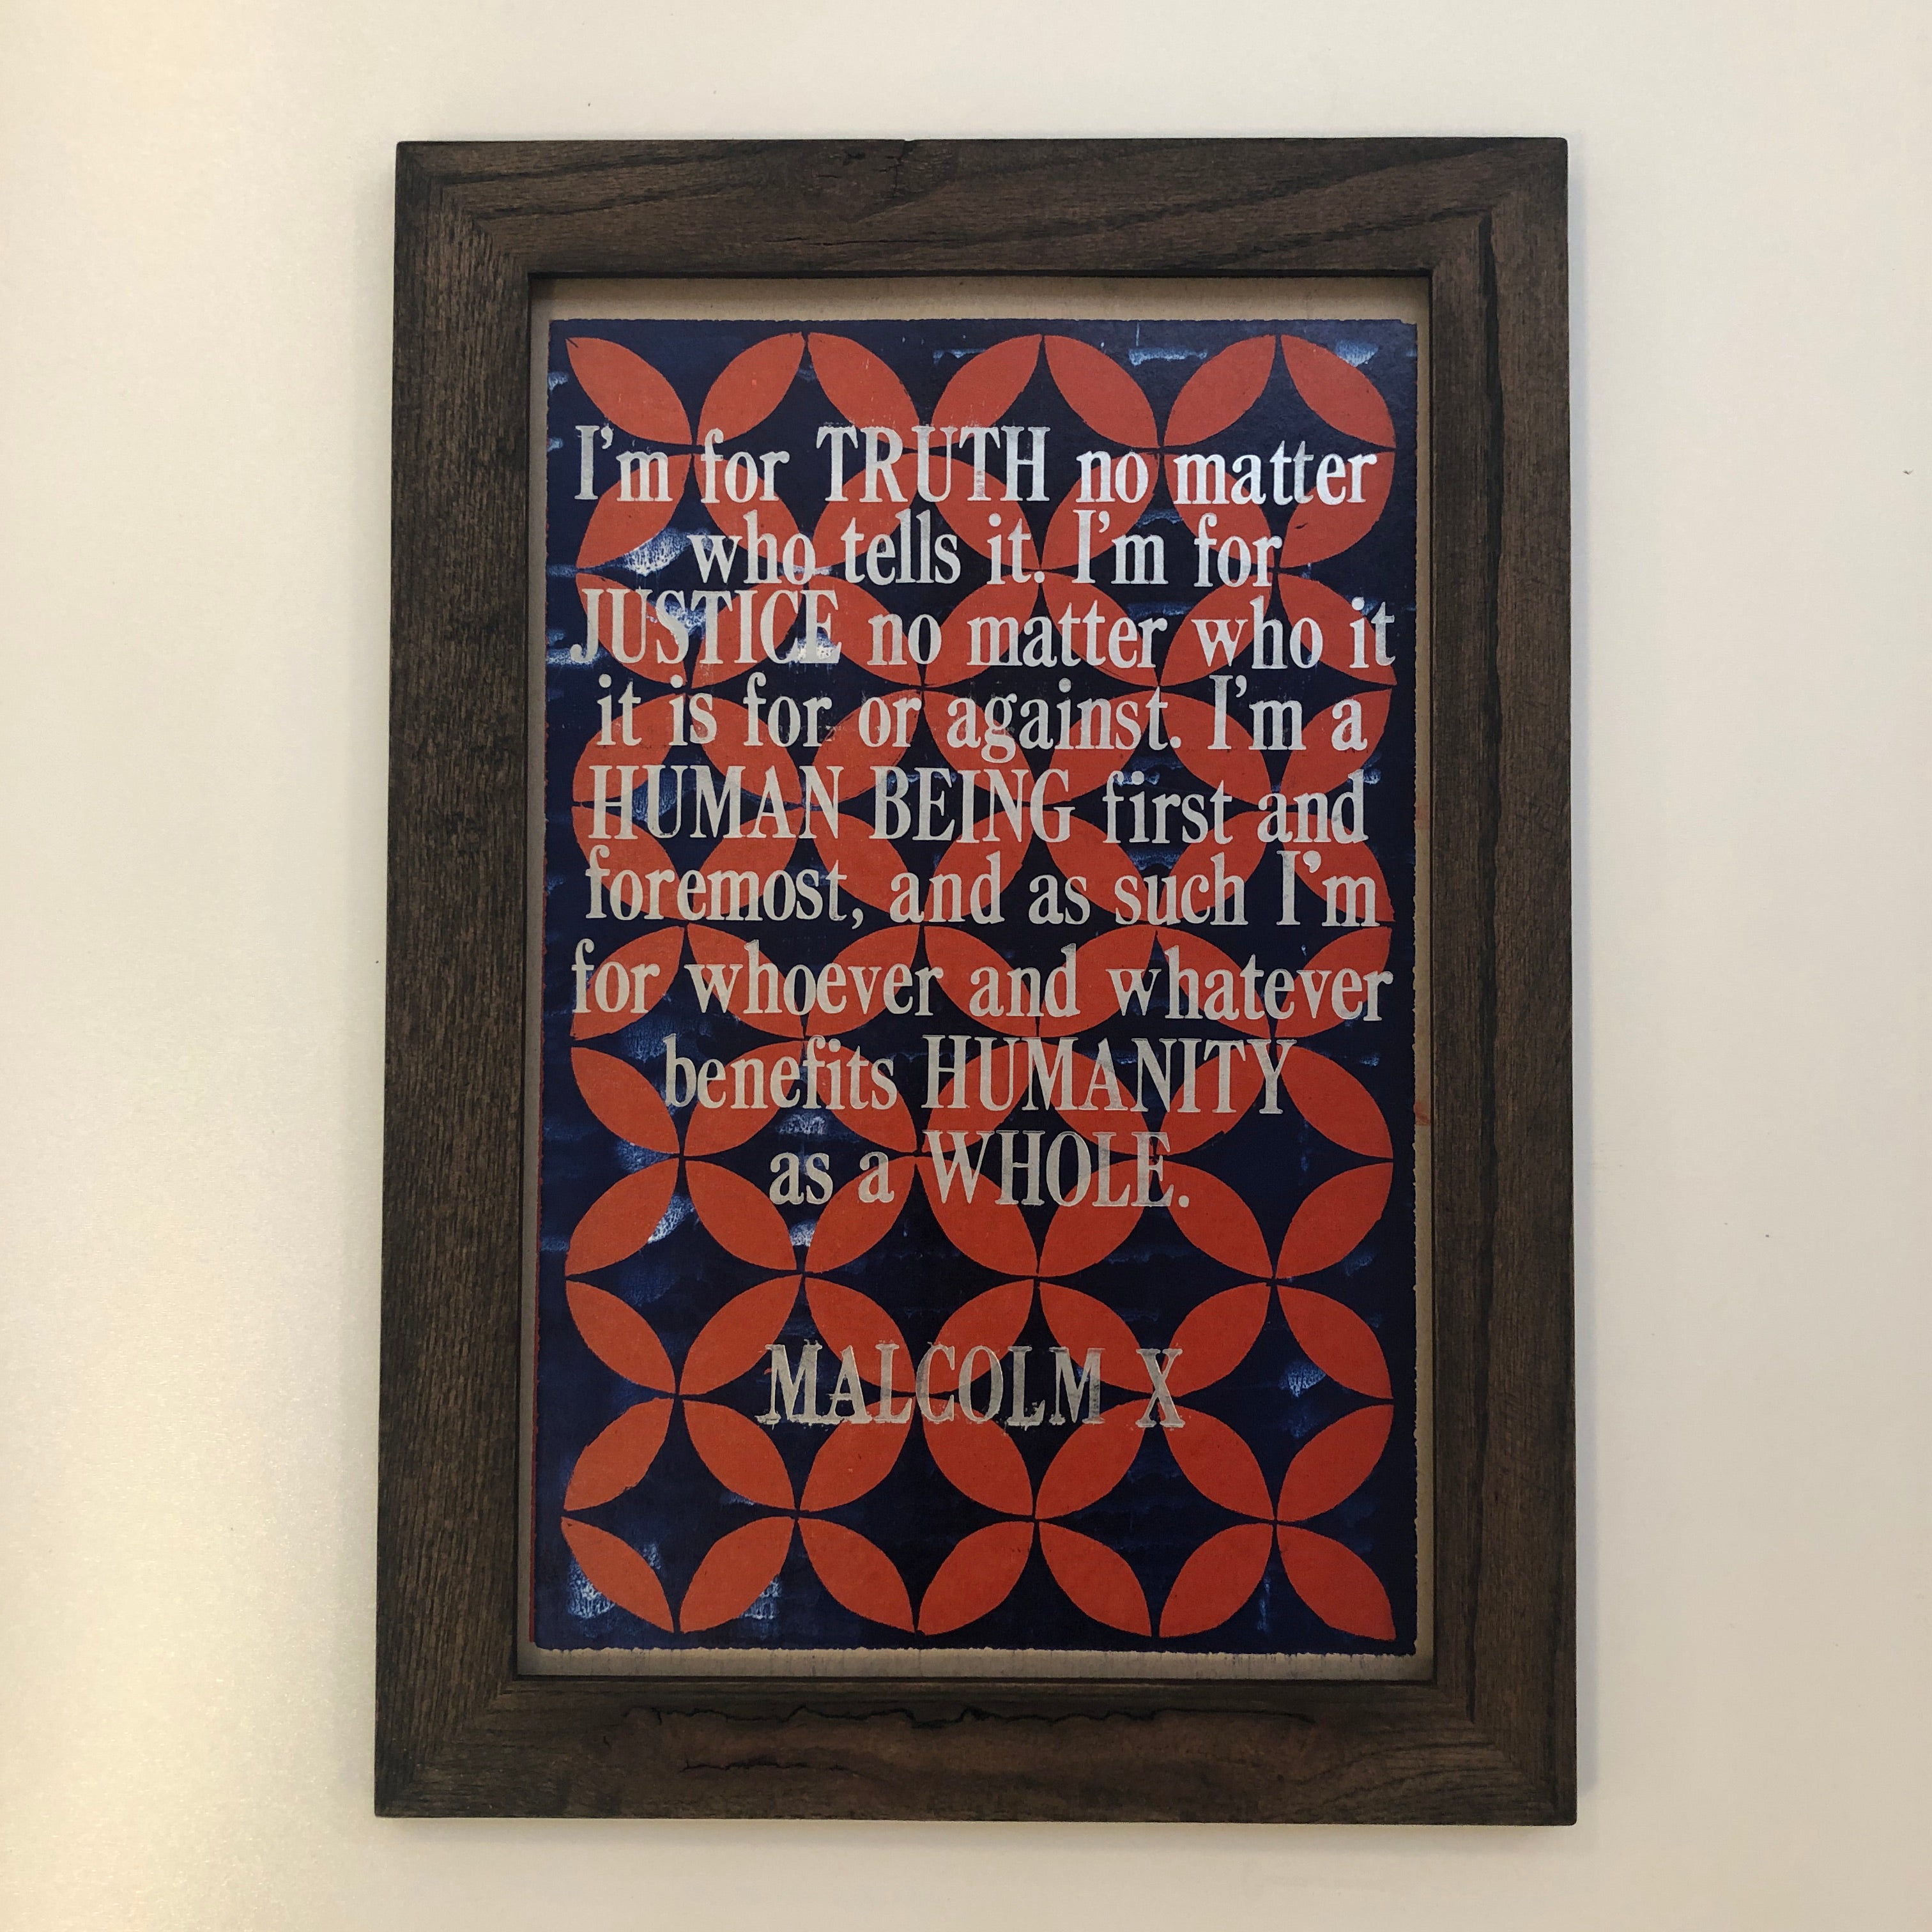 Framed Letterpress Poster - Malcolm X Quote + Pattern - 12.5x19 Print, Regan Detwiler, Handcrafted Home Goods and Gifts